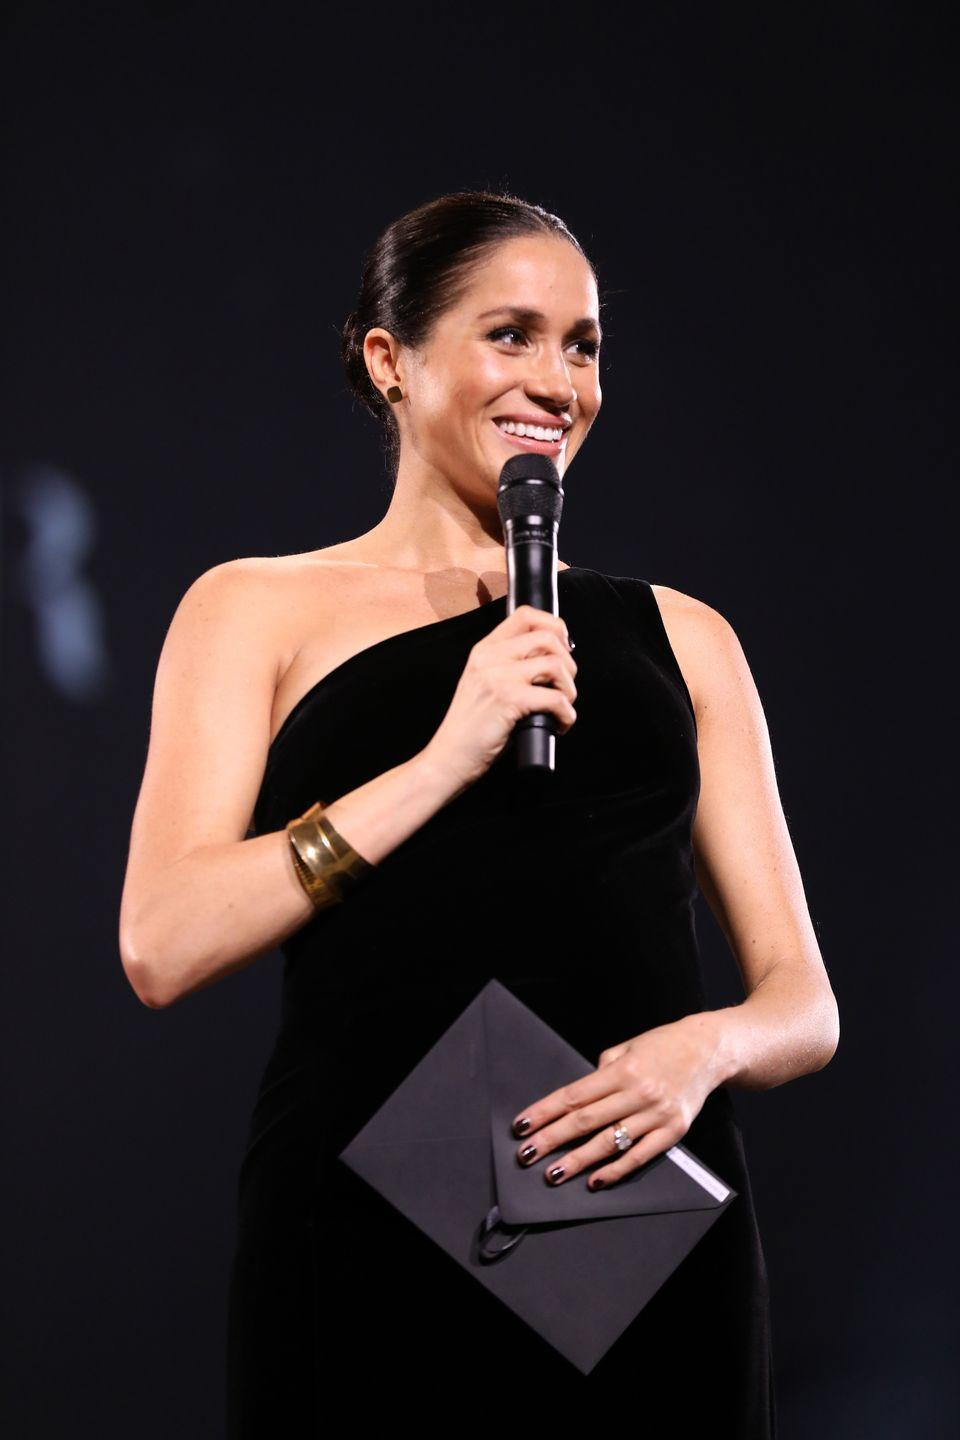 """<p>It's an unspoken rule that royal women should either wear no nail polish or neutral colors (the Queen has been wearing the same light """"Ballet Slippers"""" shade by Essie, or no polish at all, for 28 years!). But Meghan wore dark burgundy polish to The Fashion Awards in December 2018. Scandalous! </p>"""